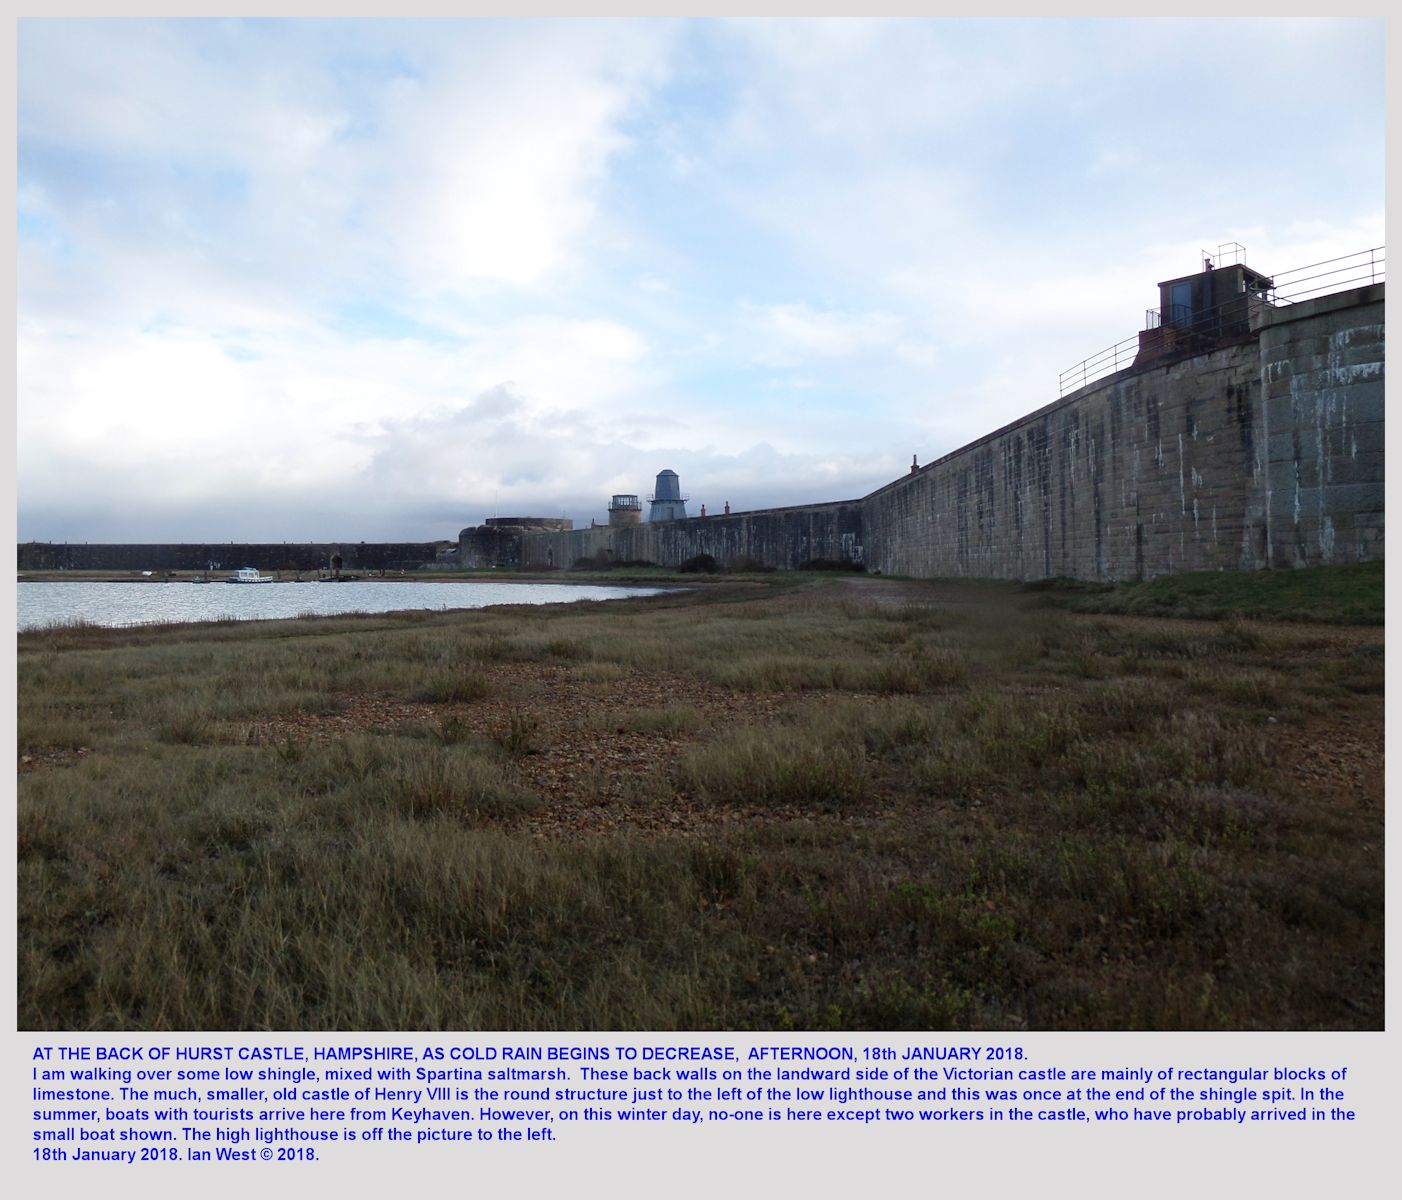 The north side of Hurst Castle Spit, Hampshire, as the rain stops, 18th January, 2018